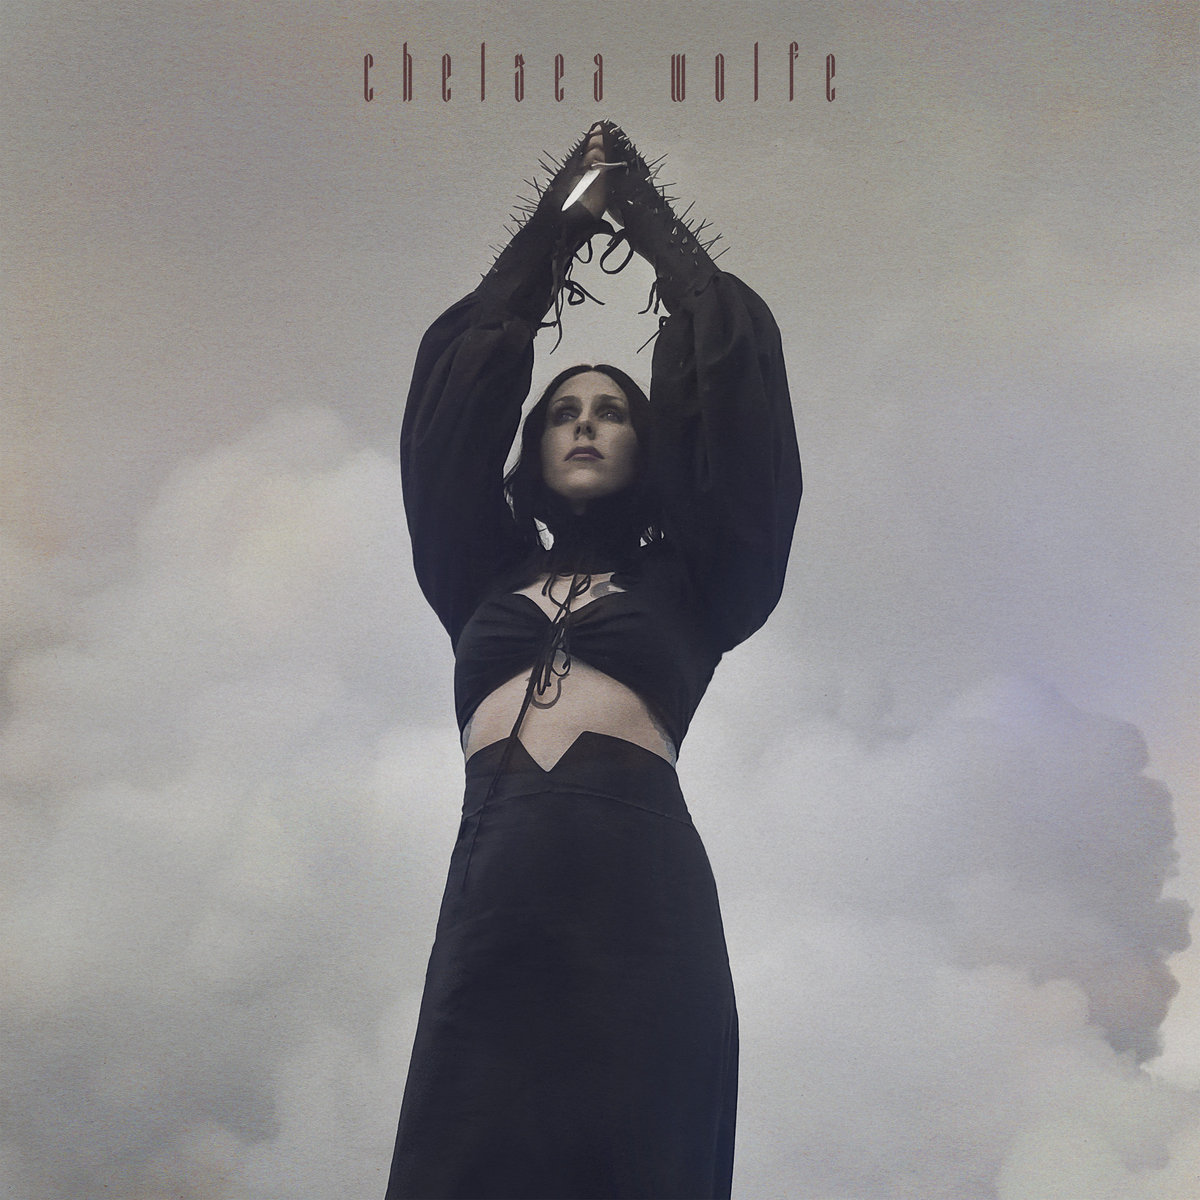 Chelsea Wolfe cements her place among the gothic greats with Birth of Violence